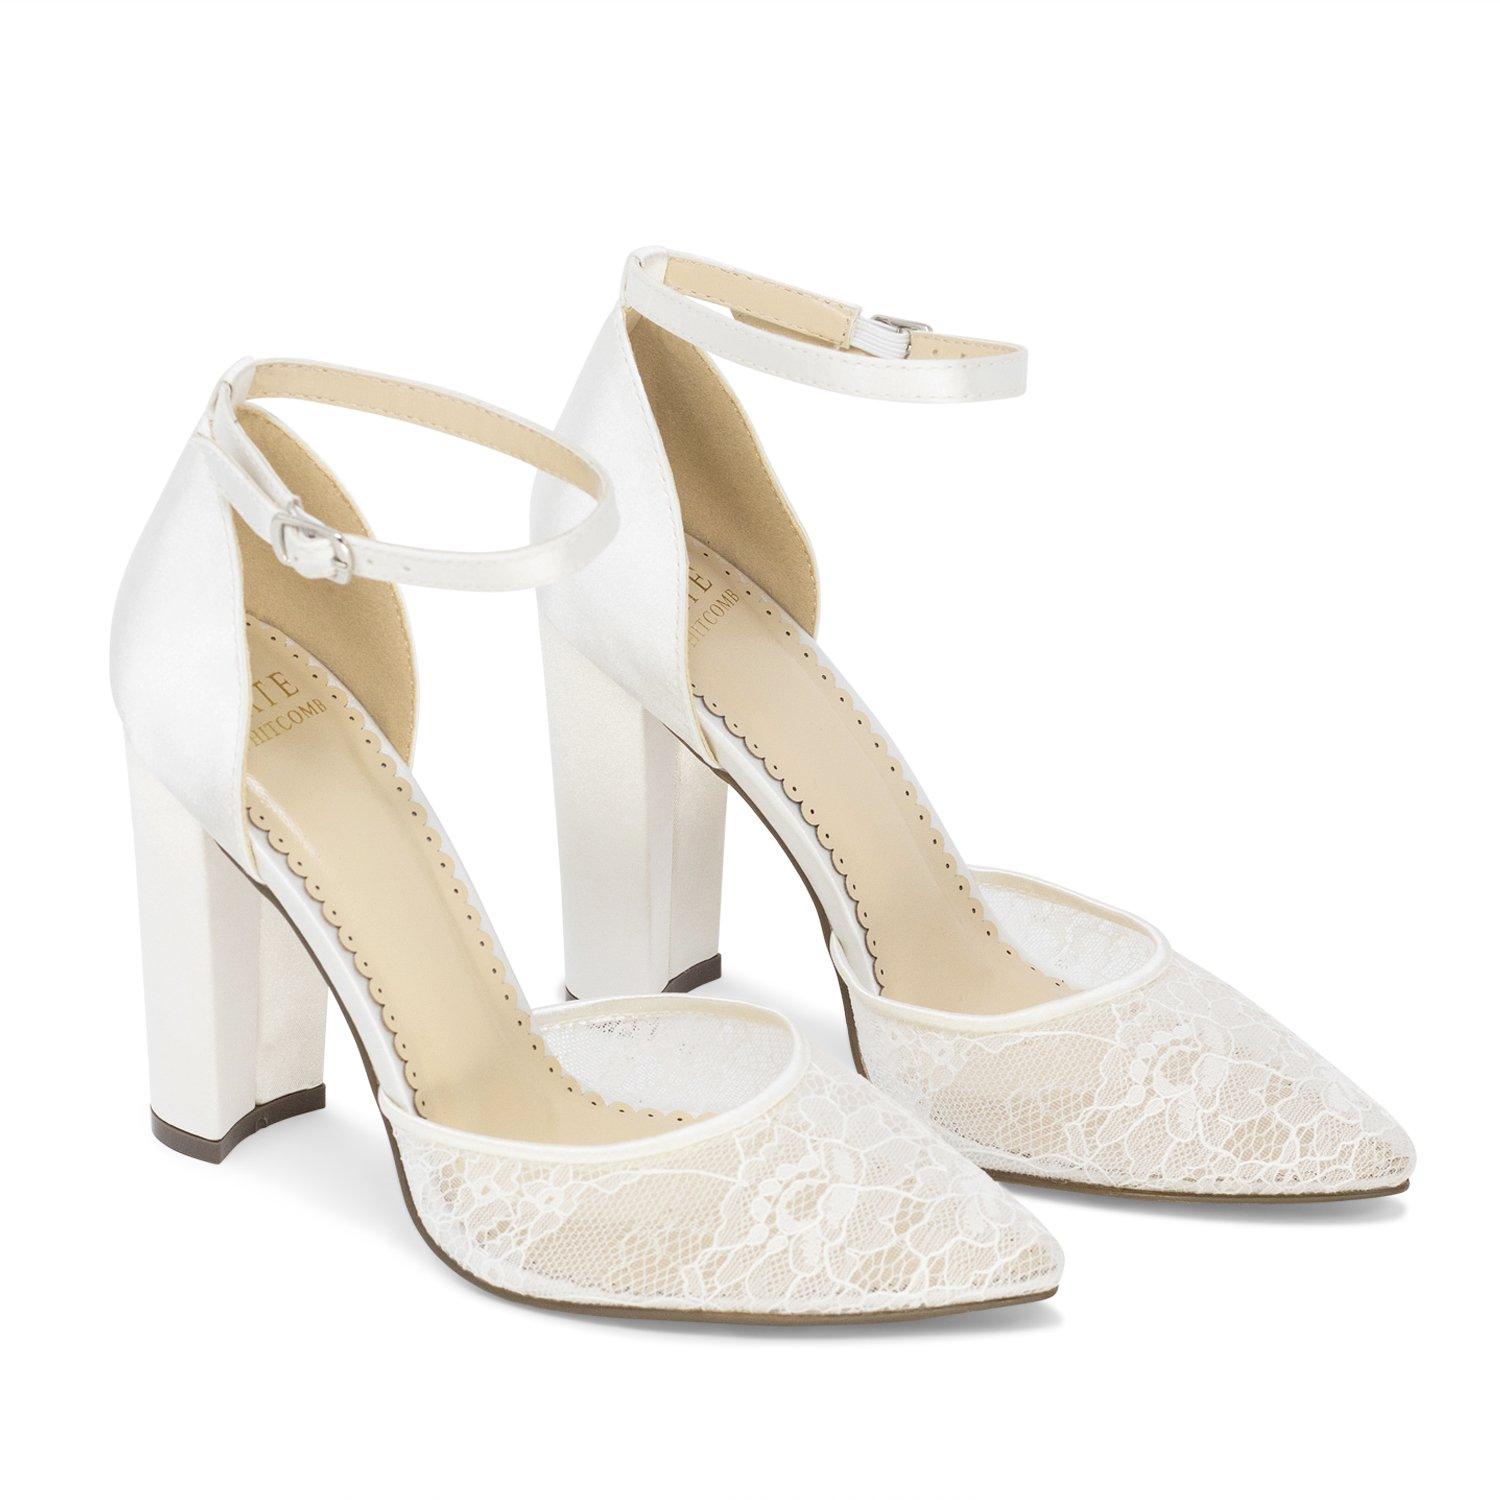 Bridal Shoes Lace High Heel Hailey Ivory In 2020 Wedding Shoes Lace Lace Wedding Shoes Ivory Bridal Heels